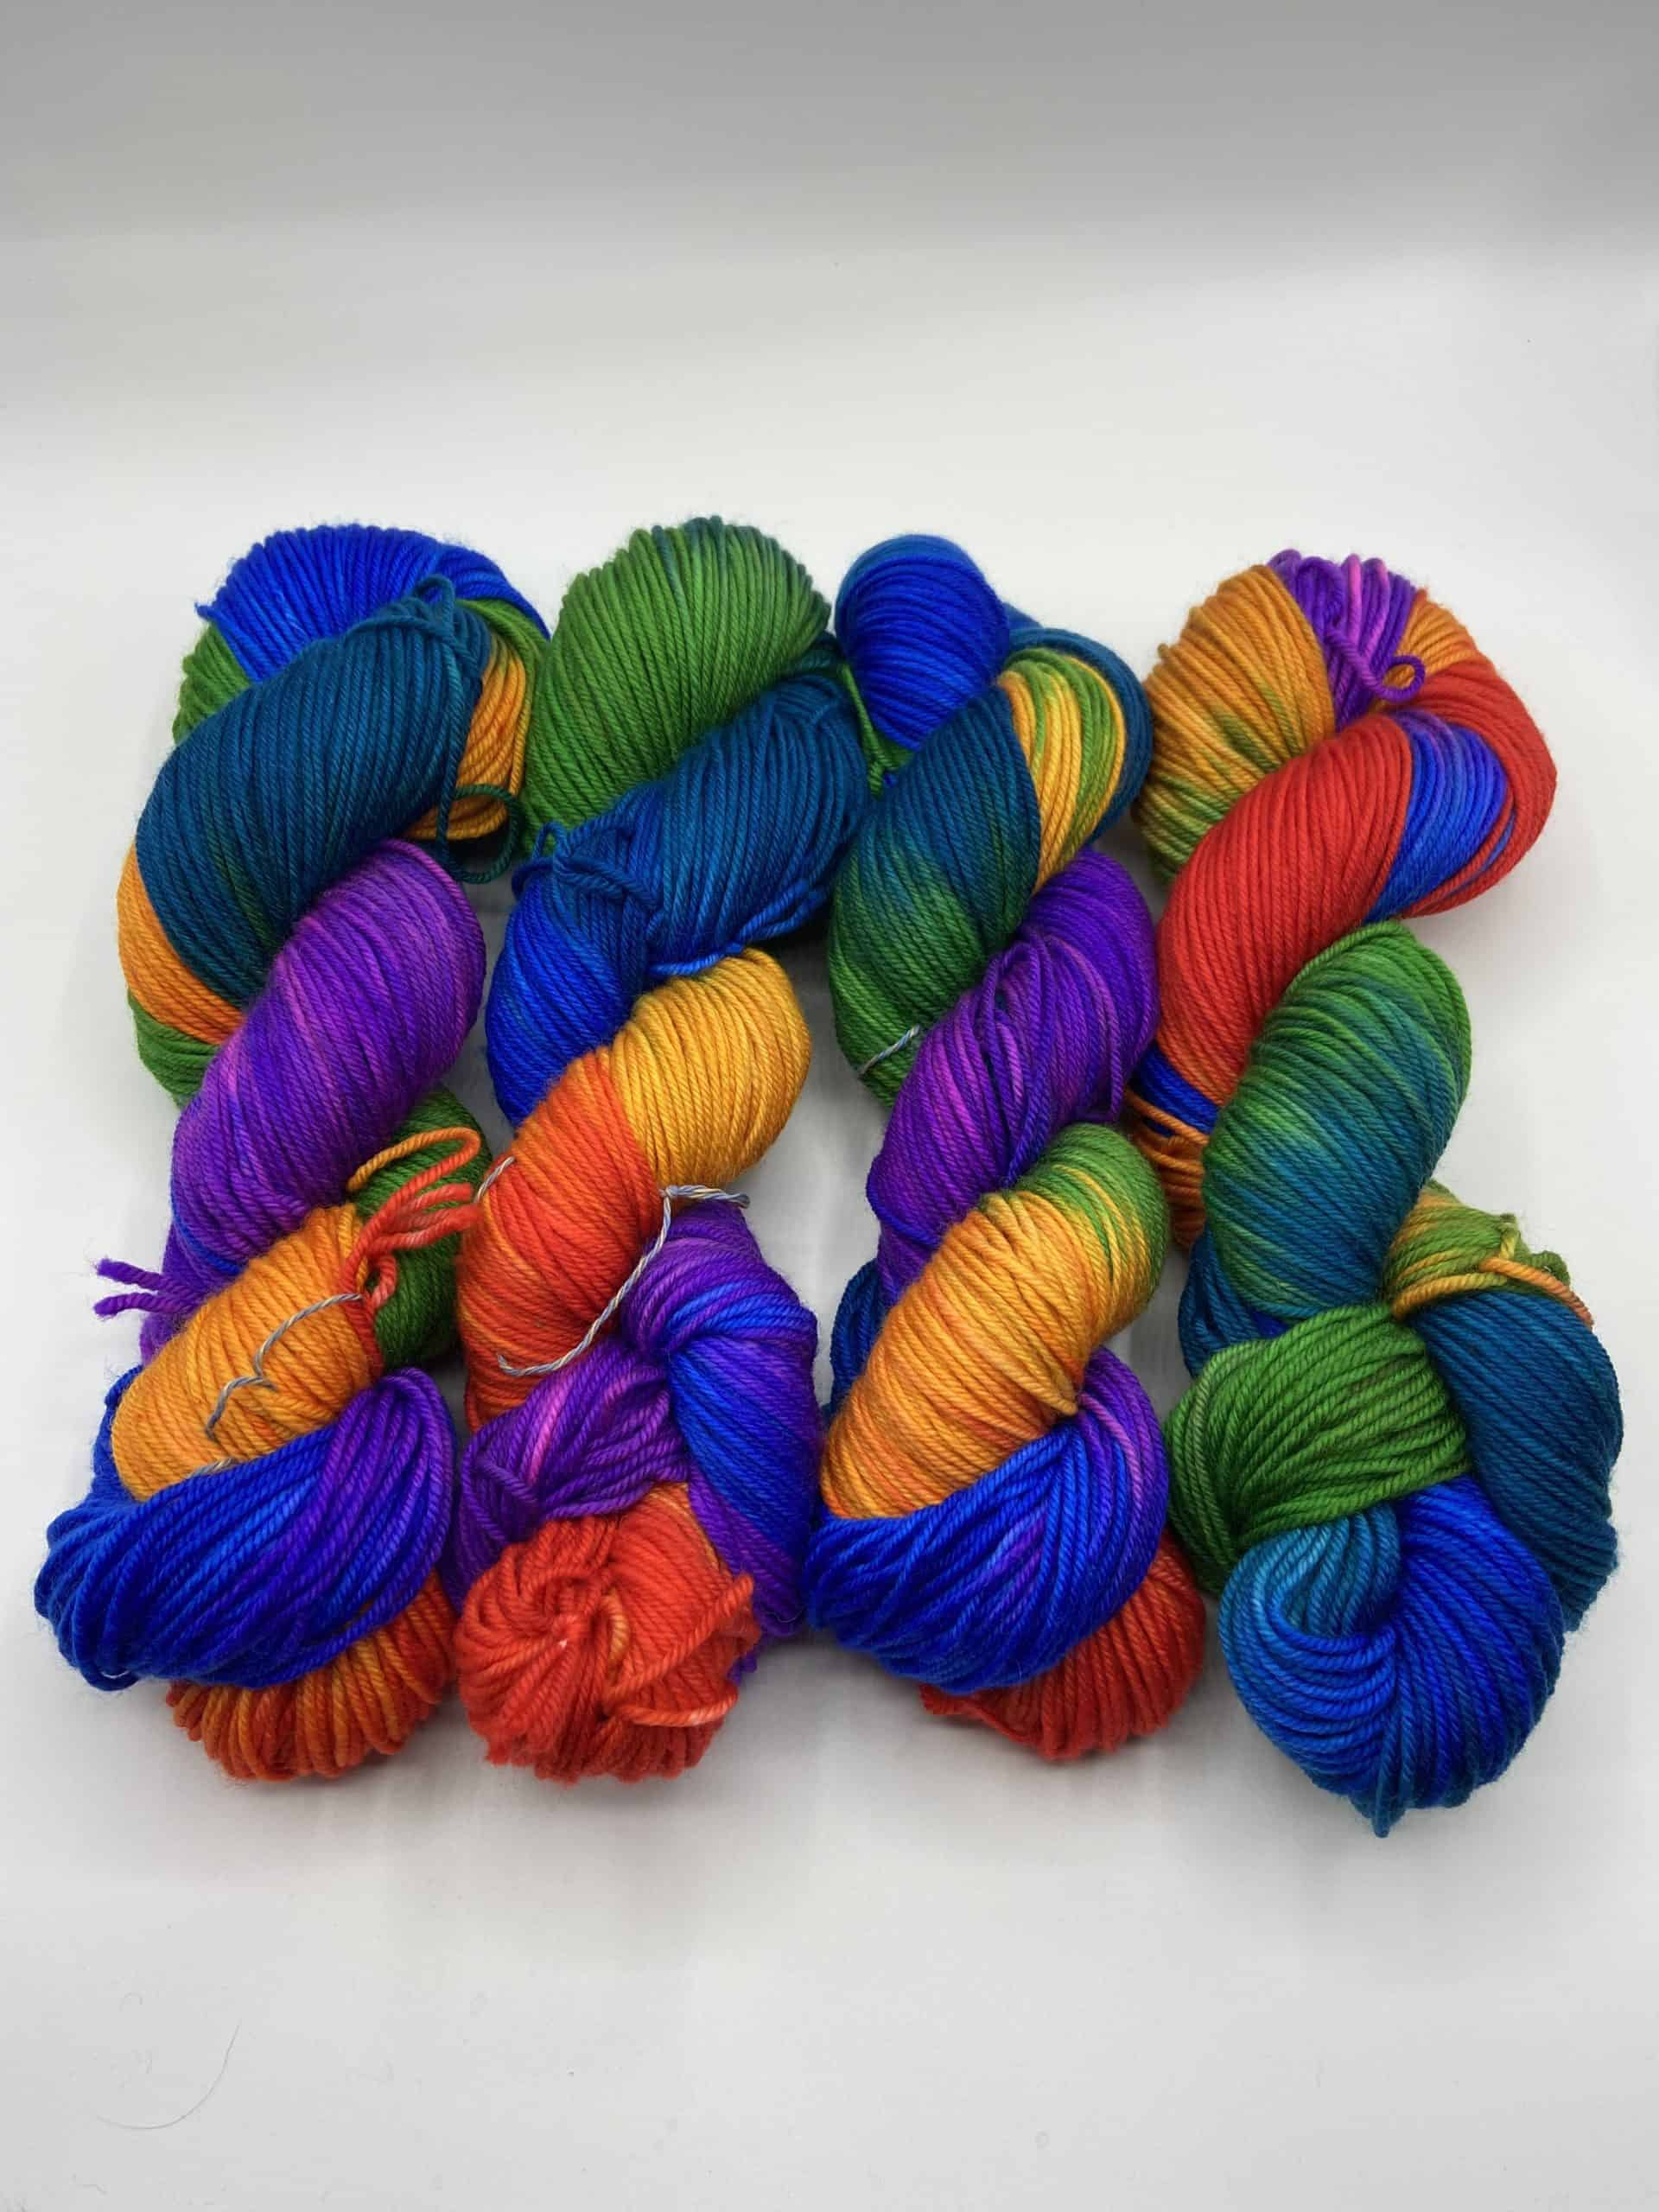 Skeins of blue, orange, purple, green and yellow yarn.